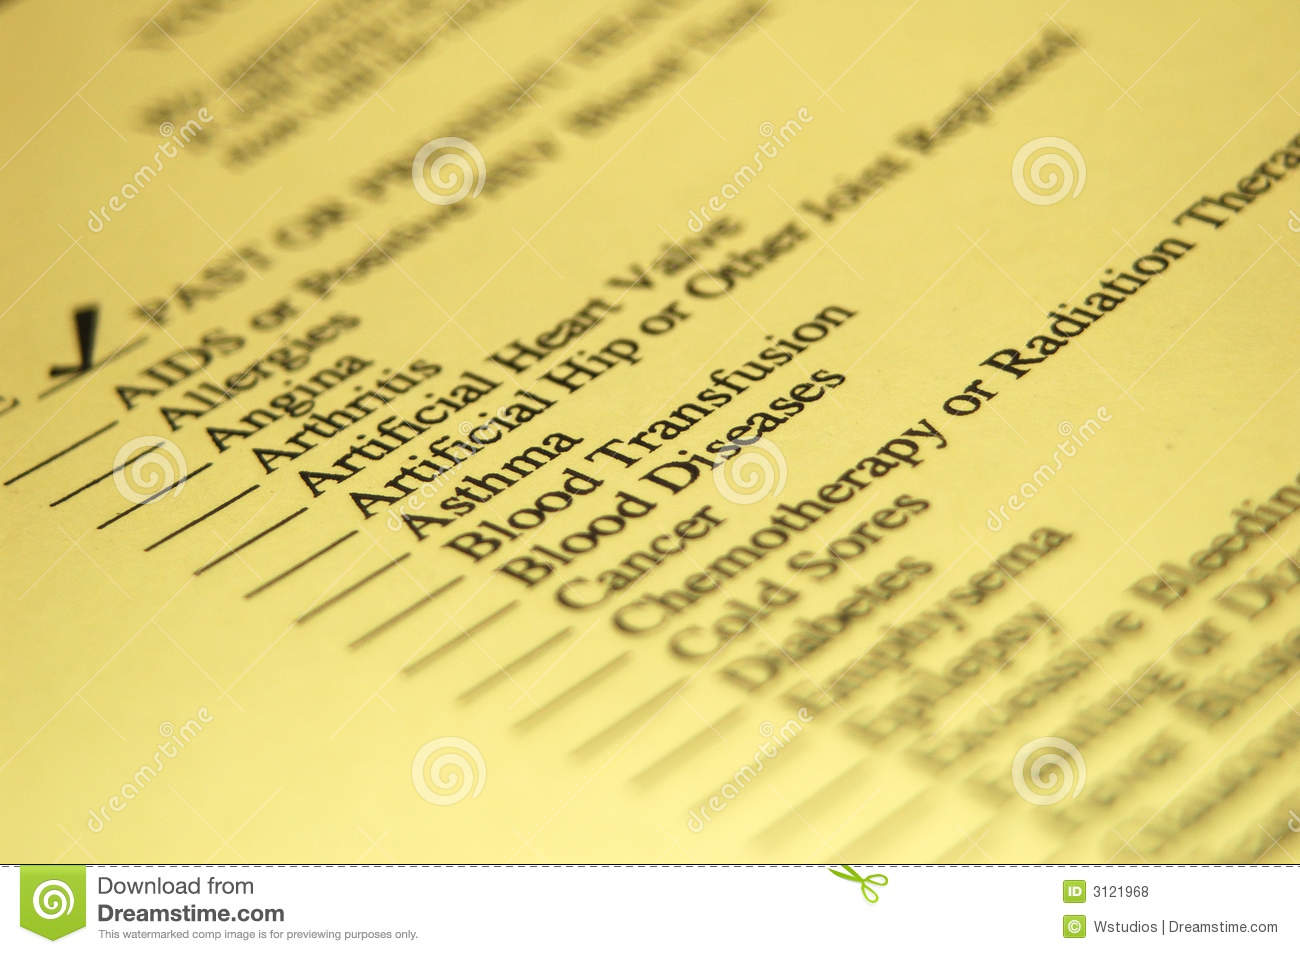 Health History Royalty Free Stock Photos - Image: 3121968